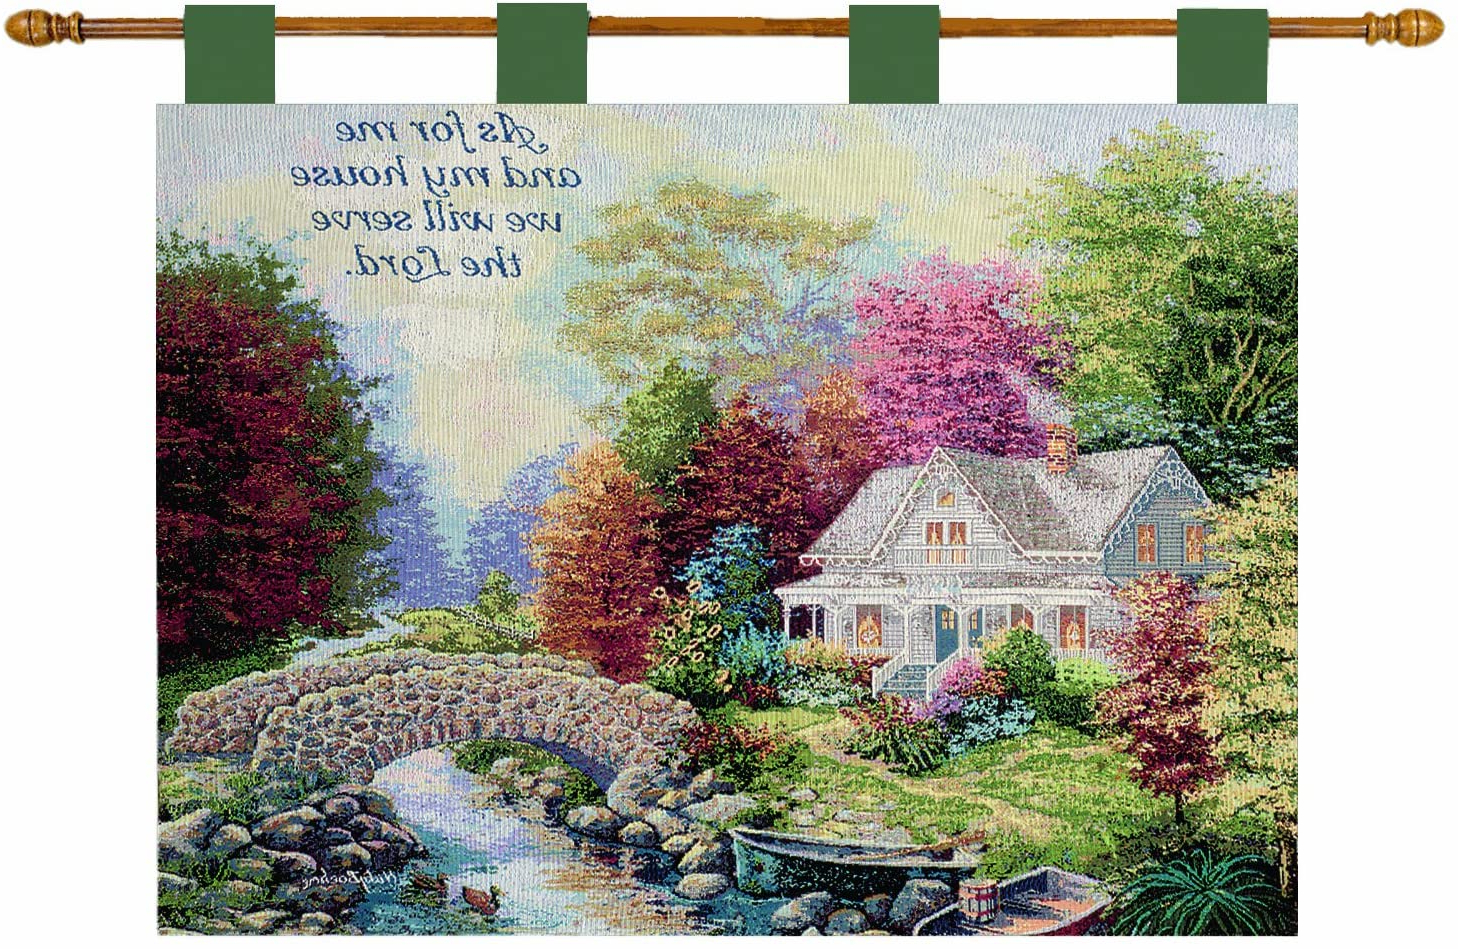 Manual Inspirational Collection 26 X 36 Inch Wall Hanging And Finial Rod, Autumn Tranquility With Versenicky Boehme, 36 X 26 Inch Inside Most Popular Blended Fabric The Broken Chain Tapestries And Wall Hangings (View 16 of 20)